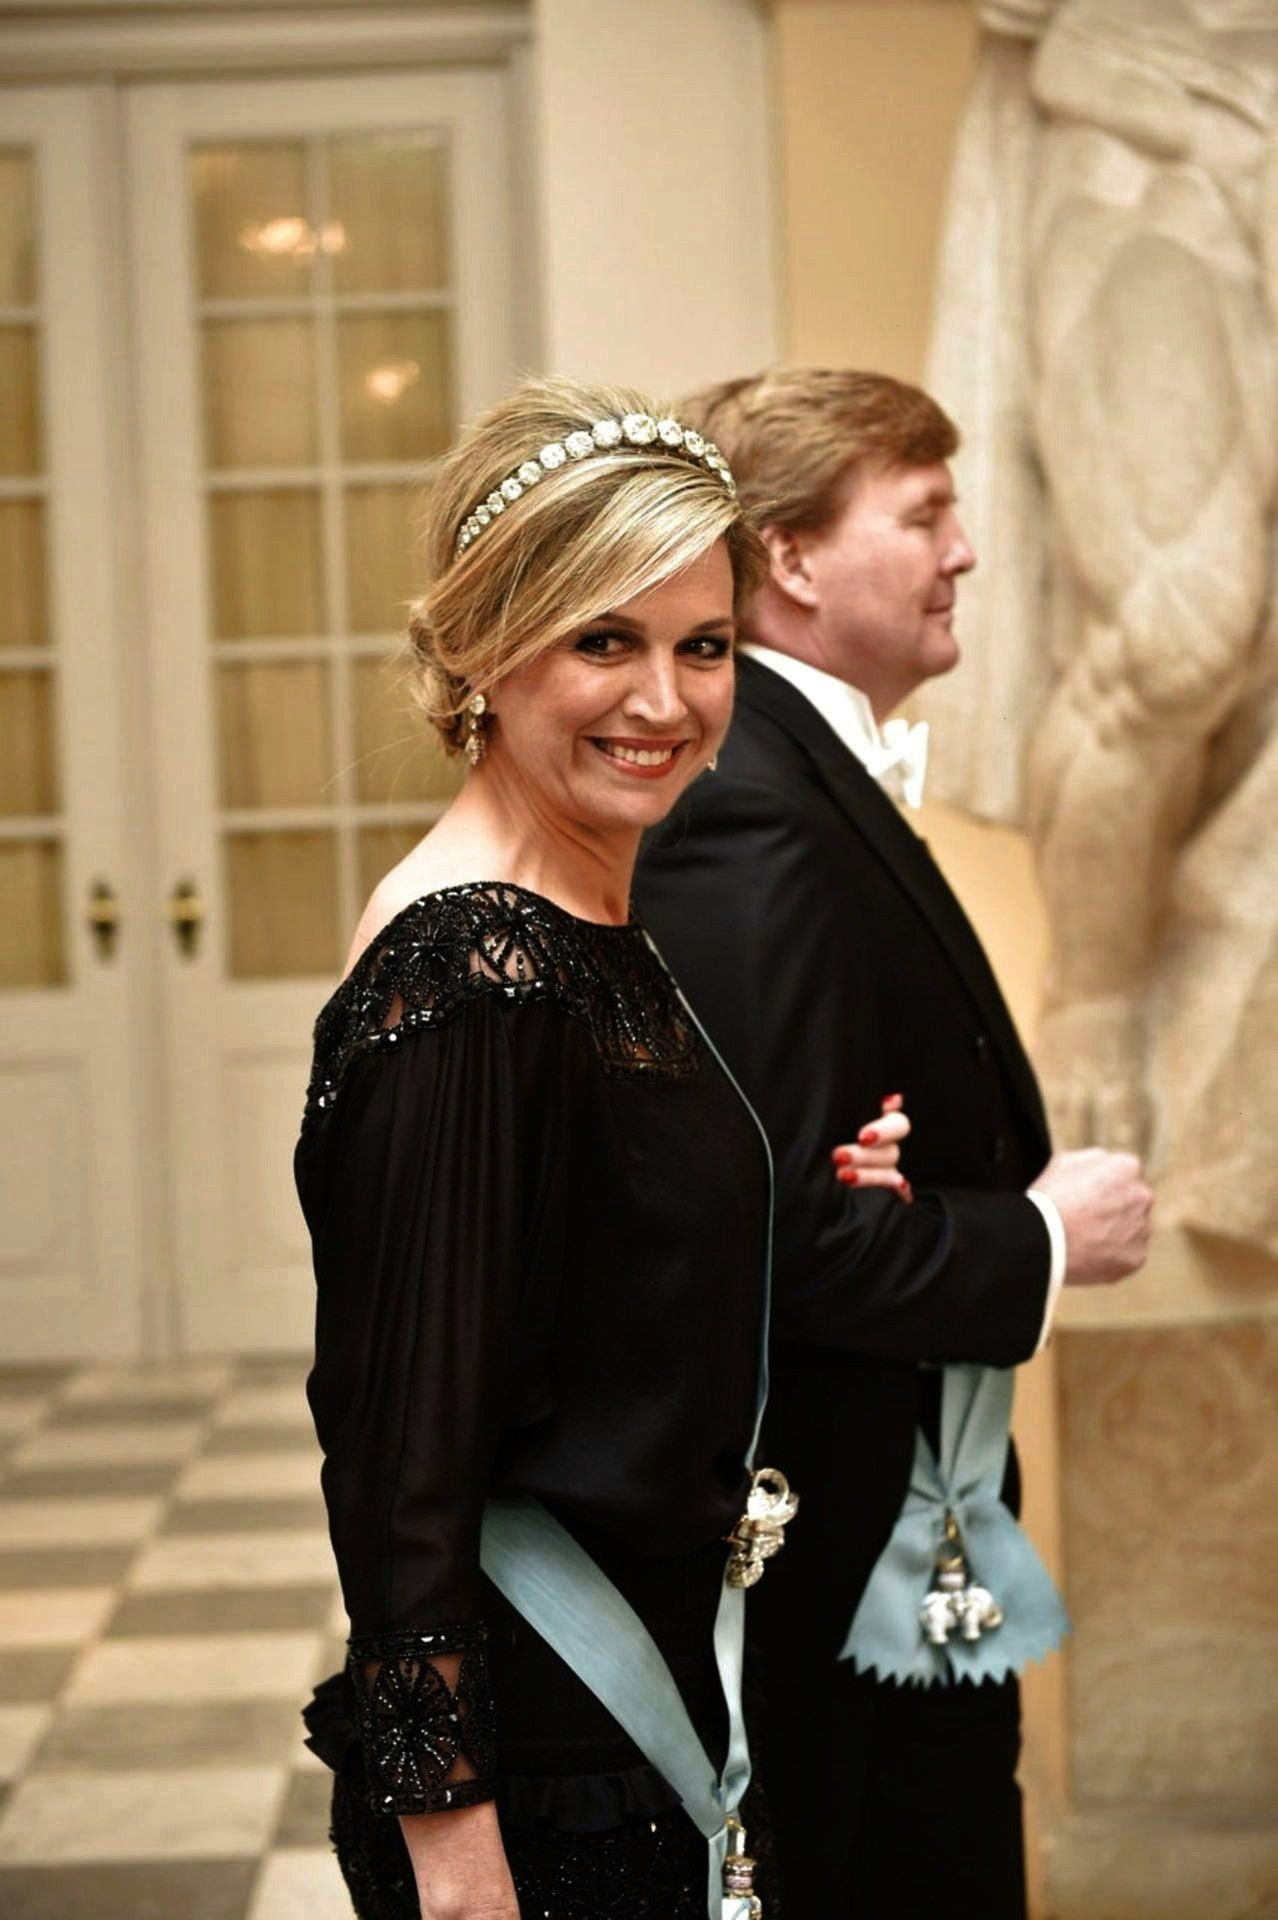 Queen Maxima of the Netherlands wore the Diamond Bandeau Tiara at the 75th birthday c TIARA ALERT Queen Maxima of the Netherlands wore the Diamond Bandeau Tiara at...